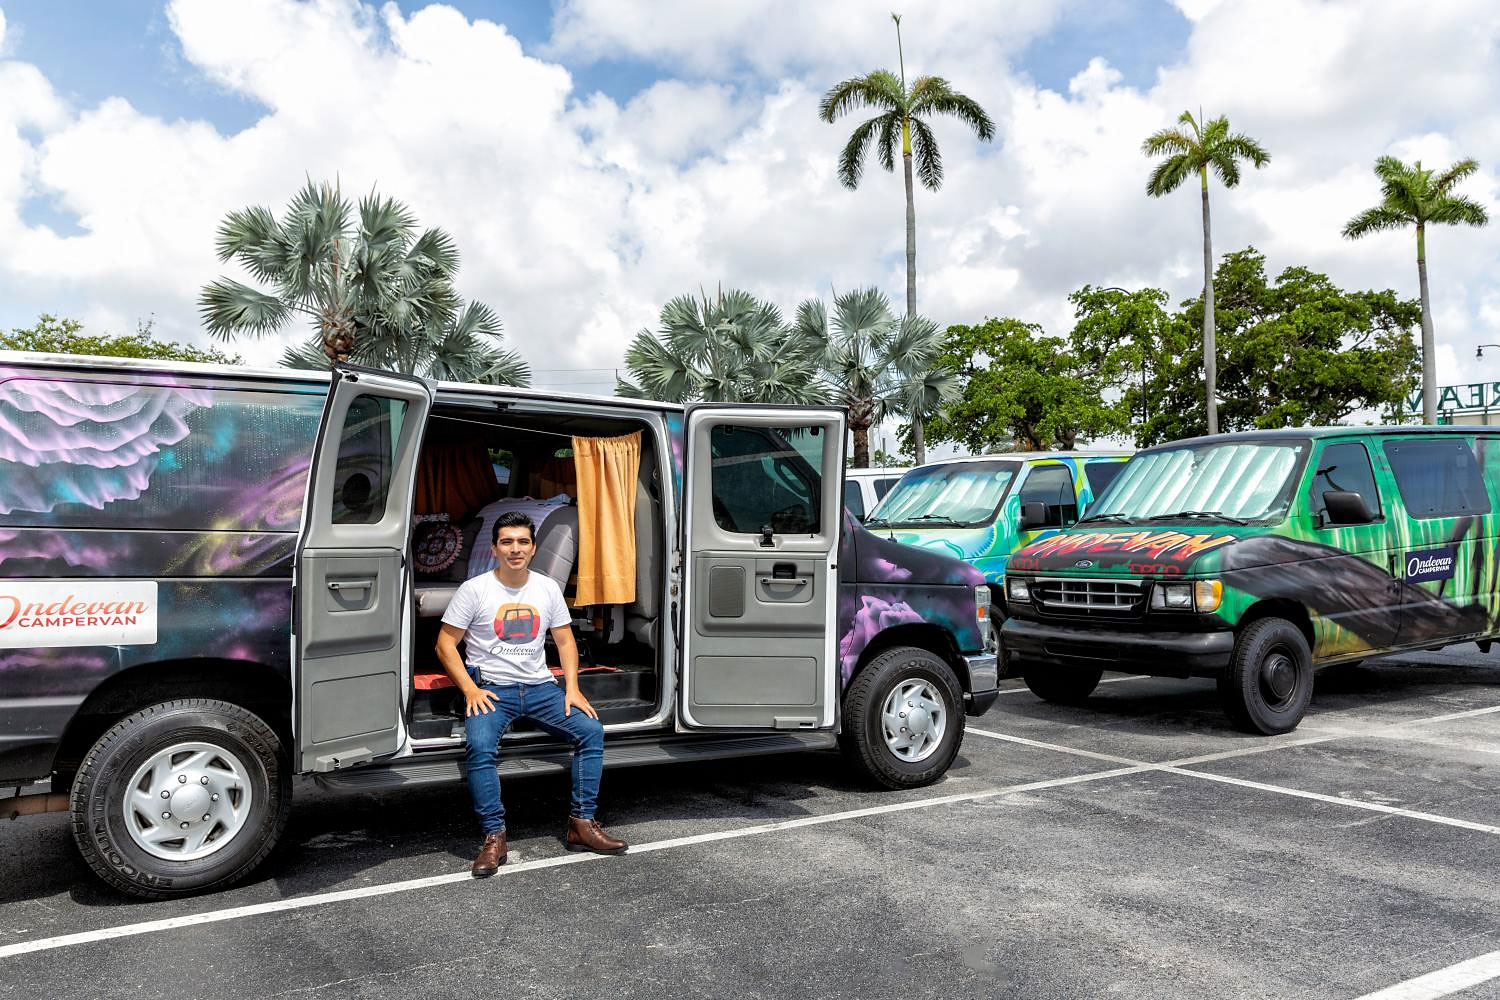 At Ondevan in Miami, a camper van runs about $100 a day.